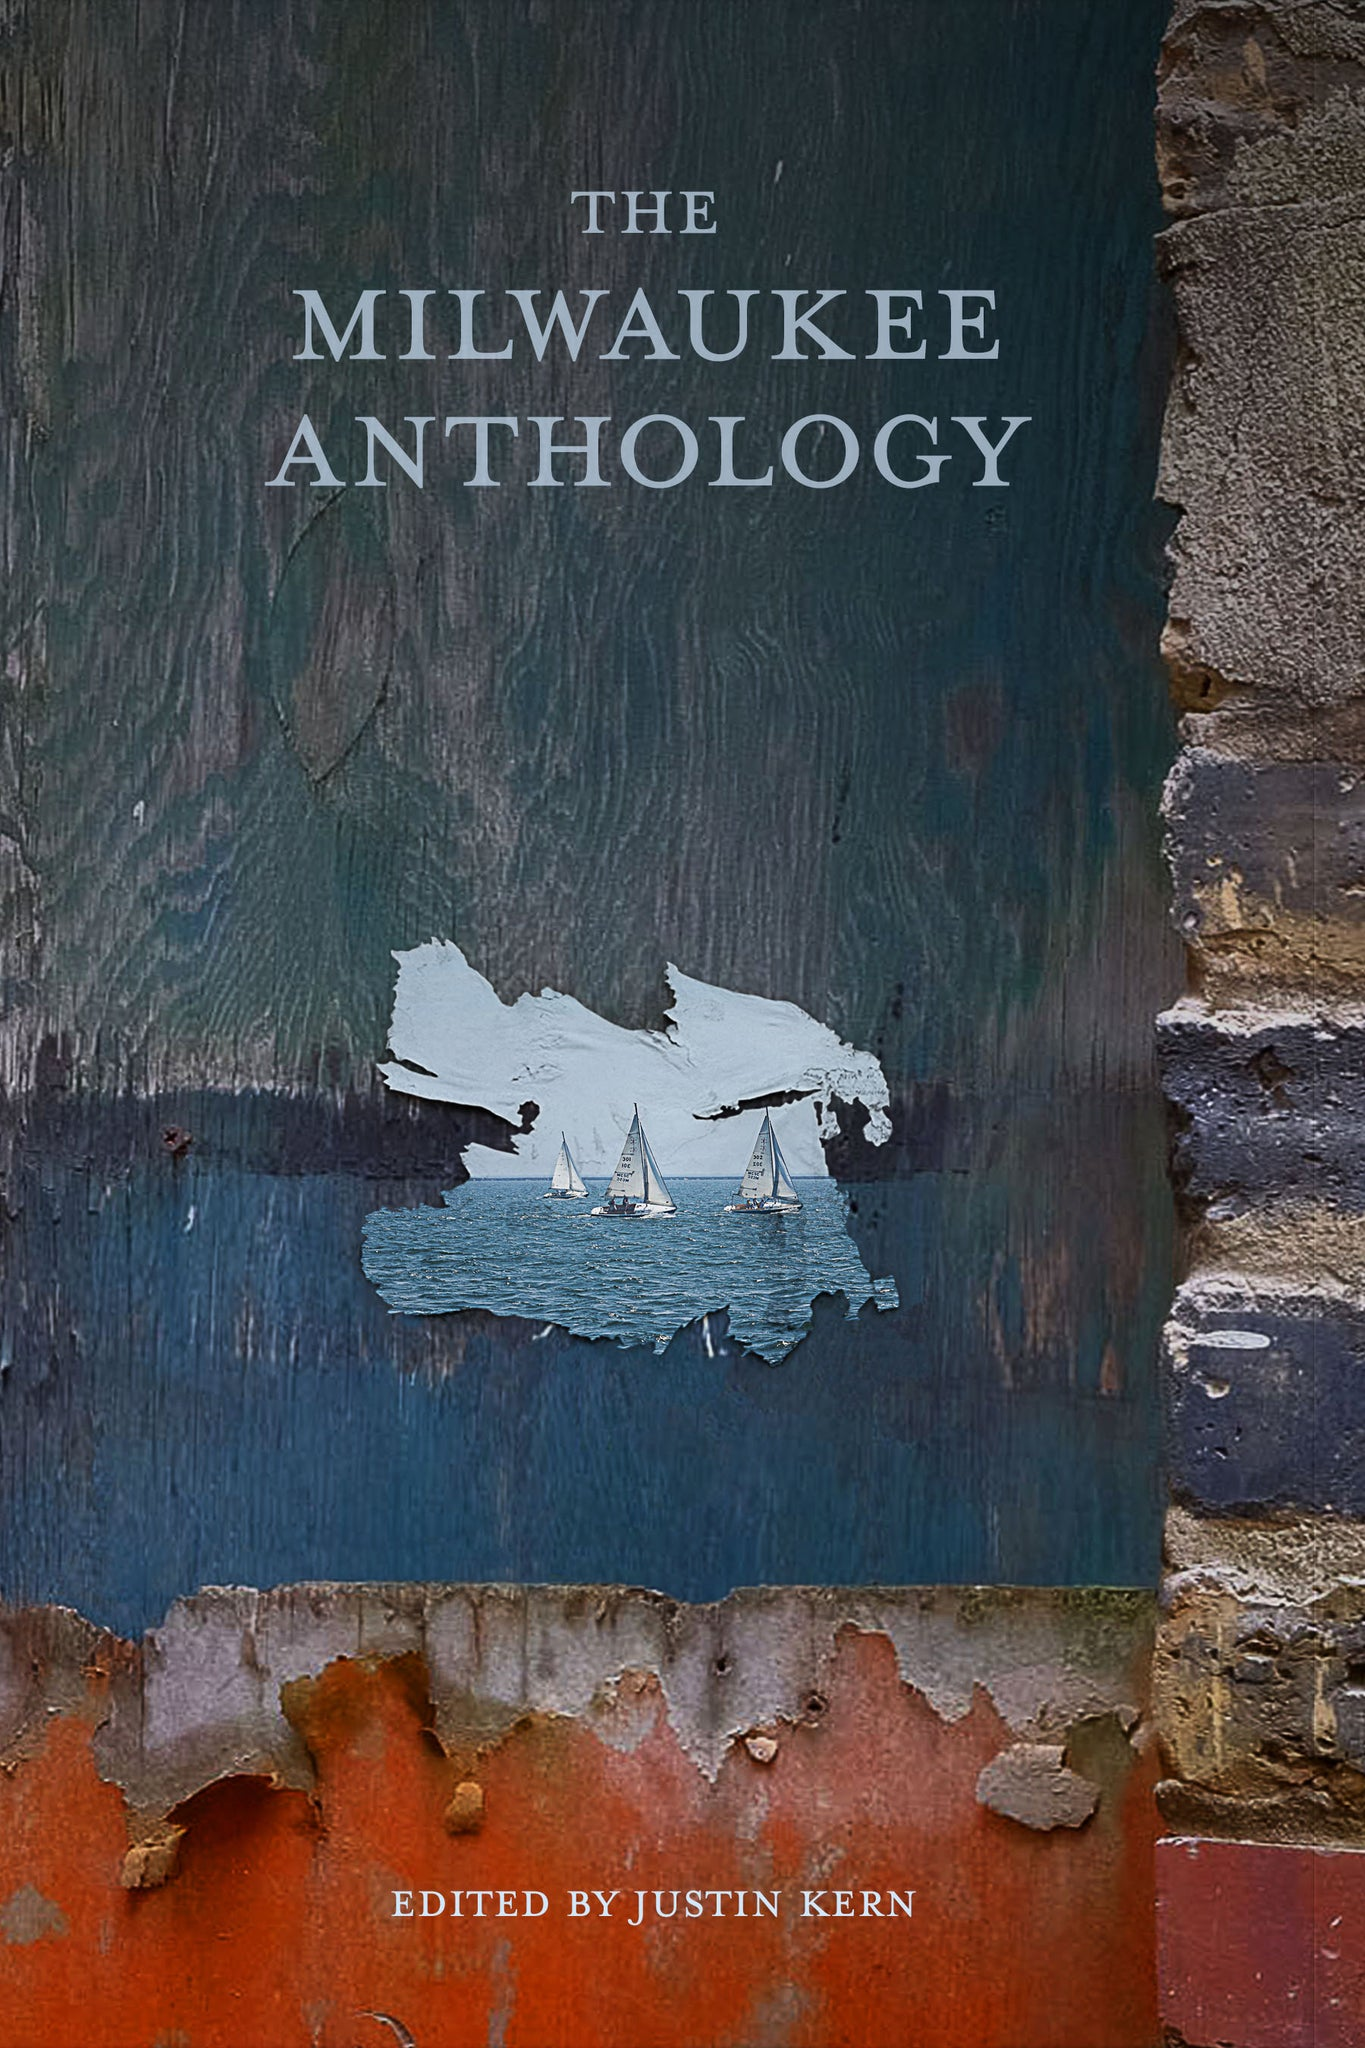 The Milwaukee Anthology